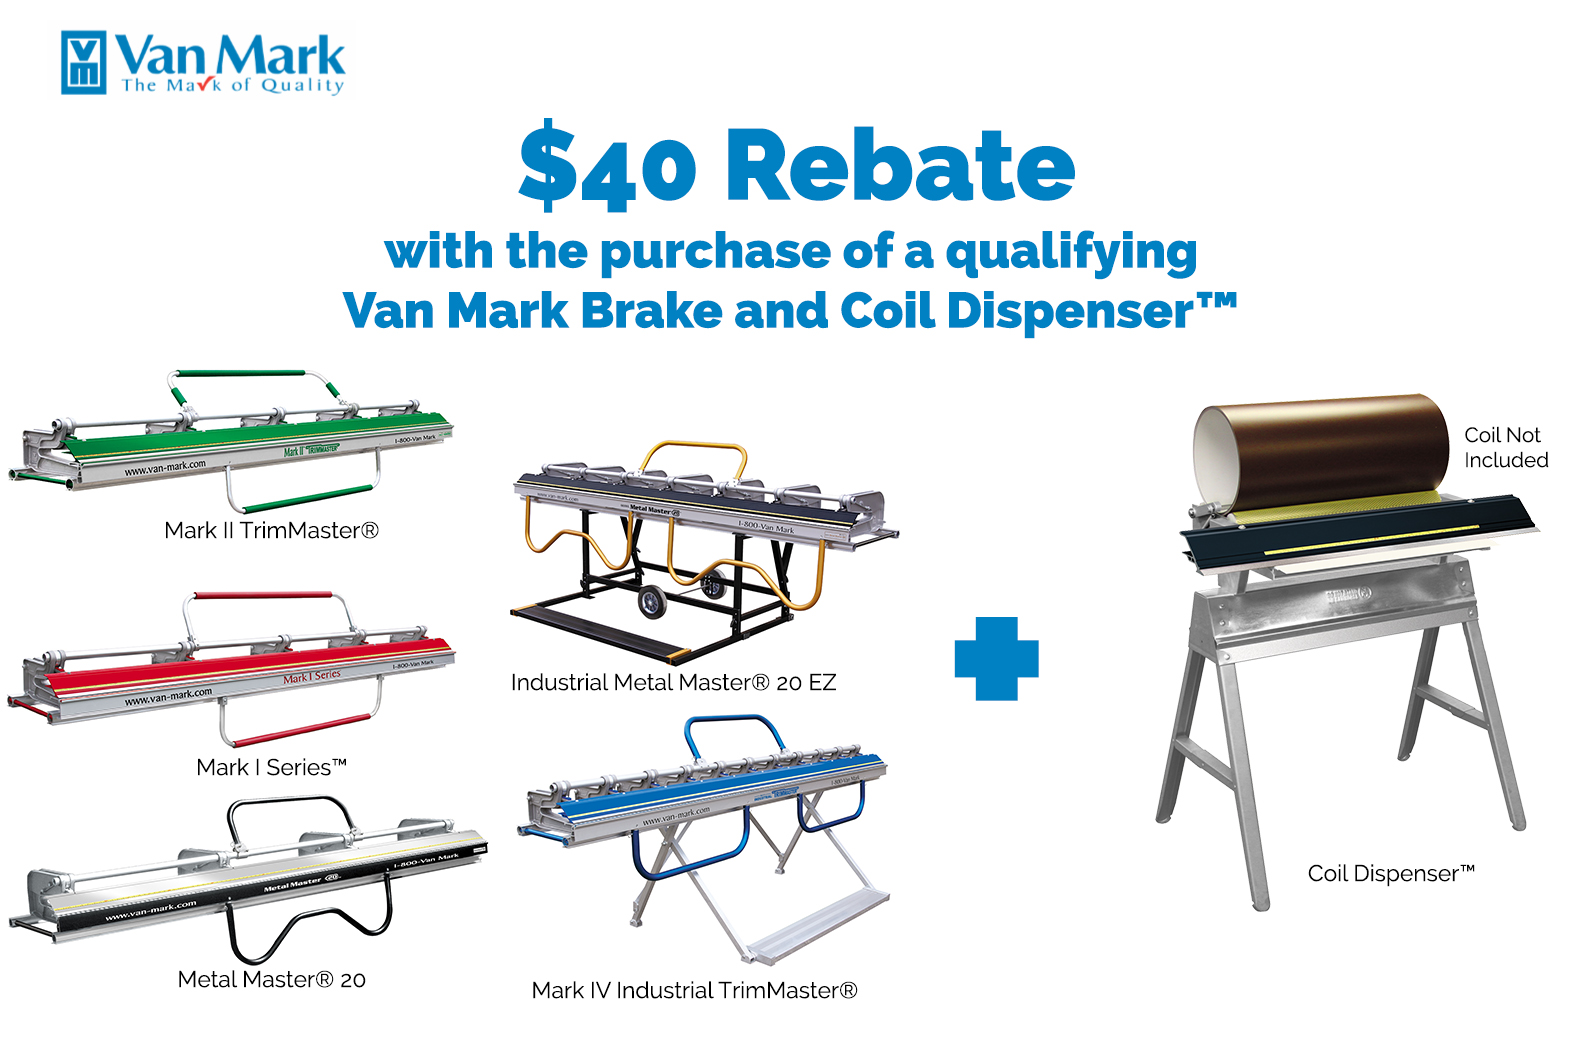 Qualifying Brake with Coil Dispenser $40 October Rebate Offer